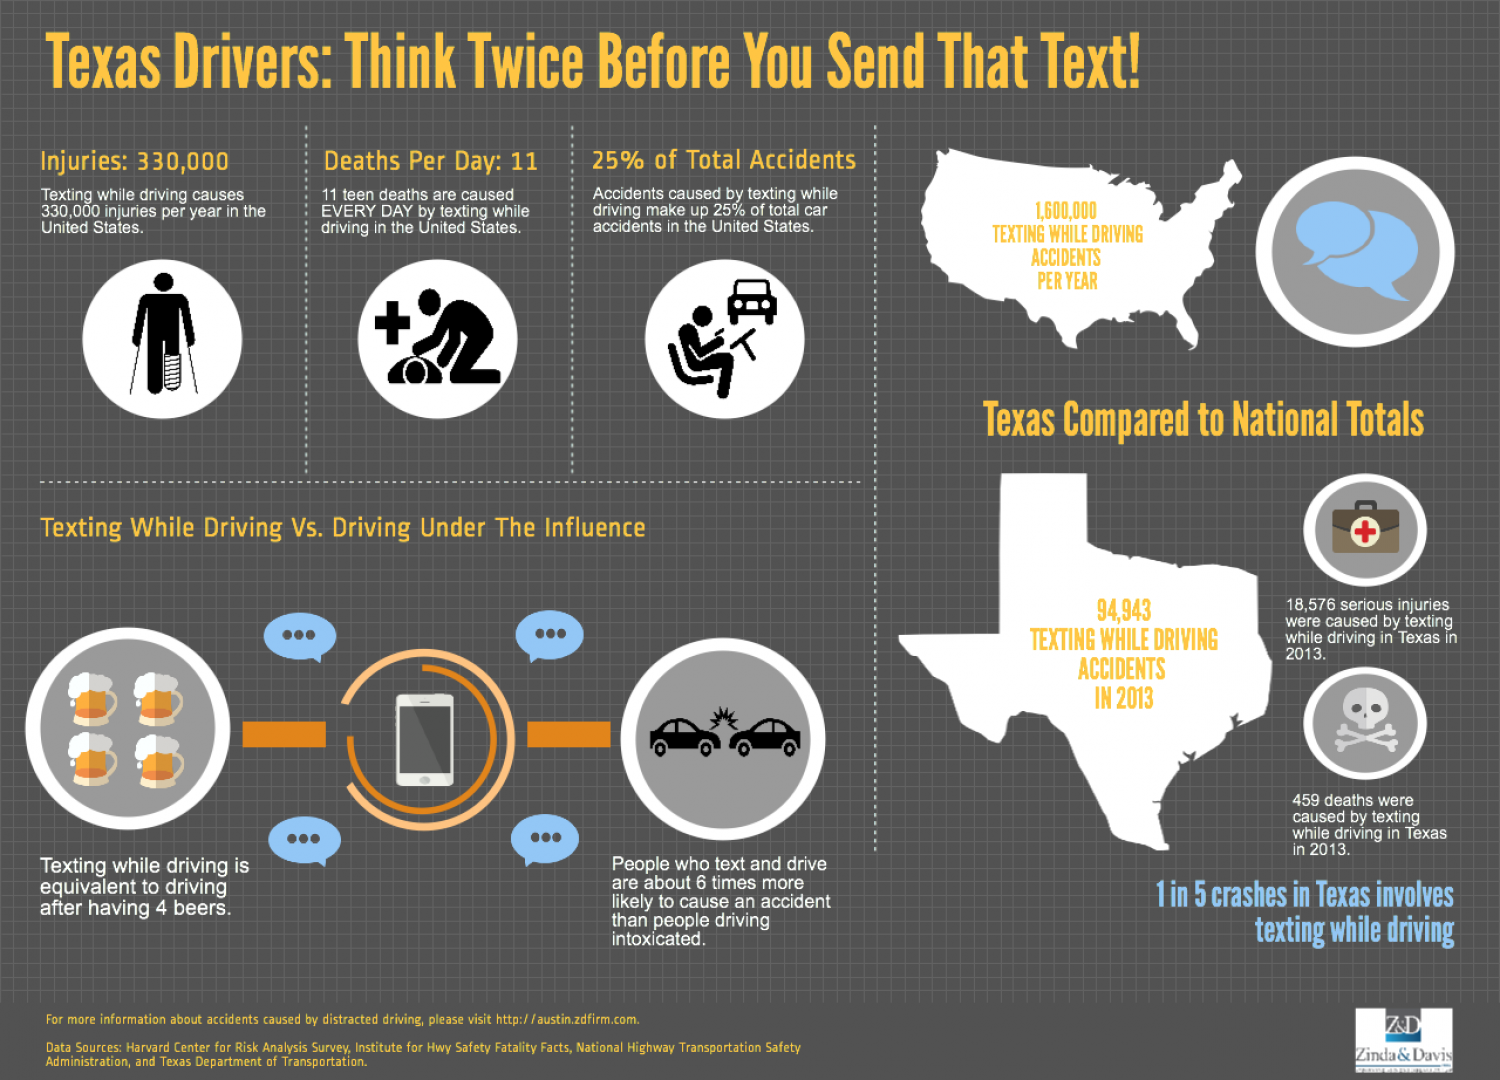 Texas Drivers: Think Twice Before You Send That Text Infographic